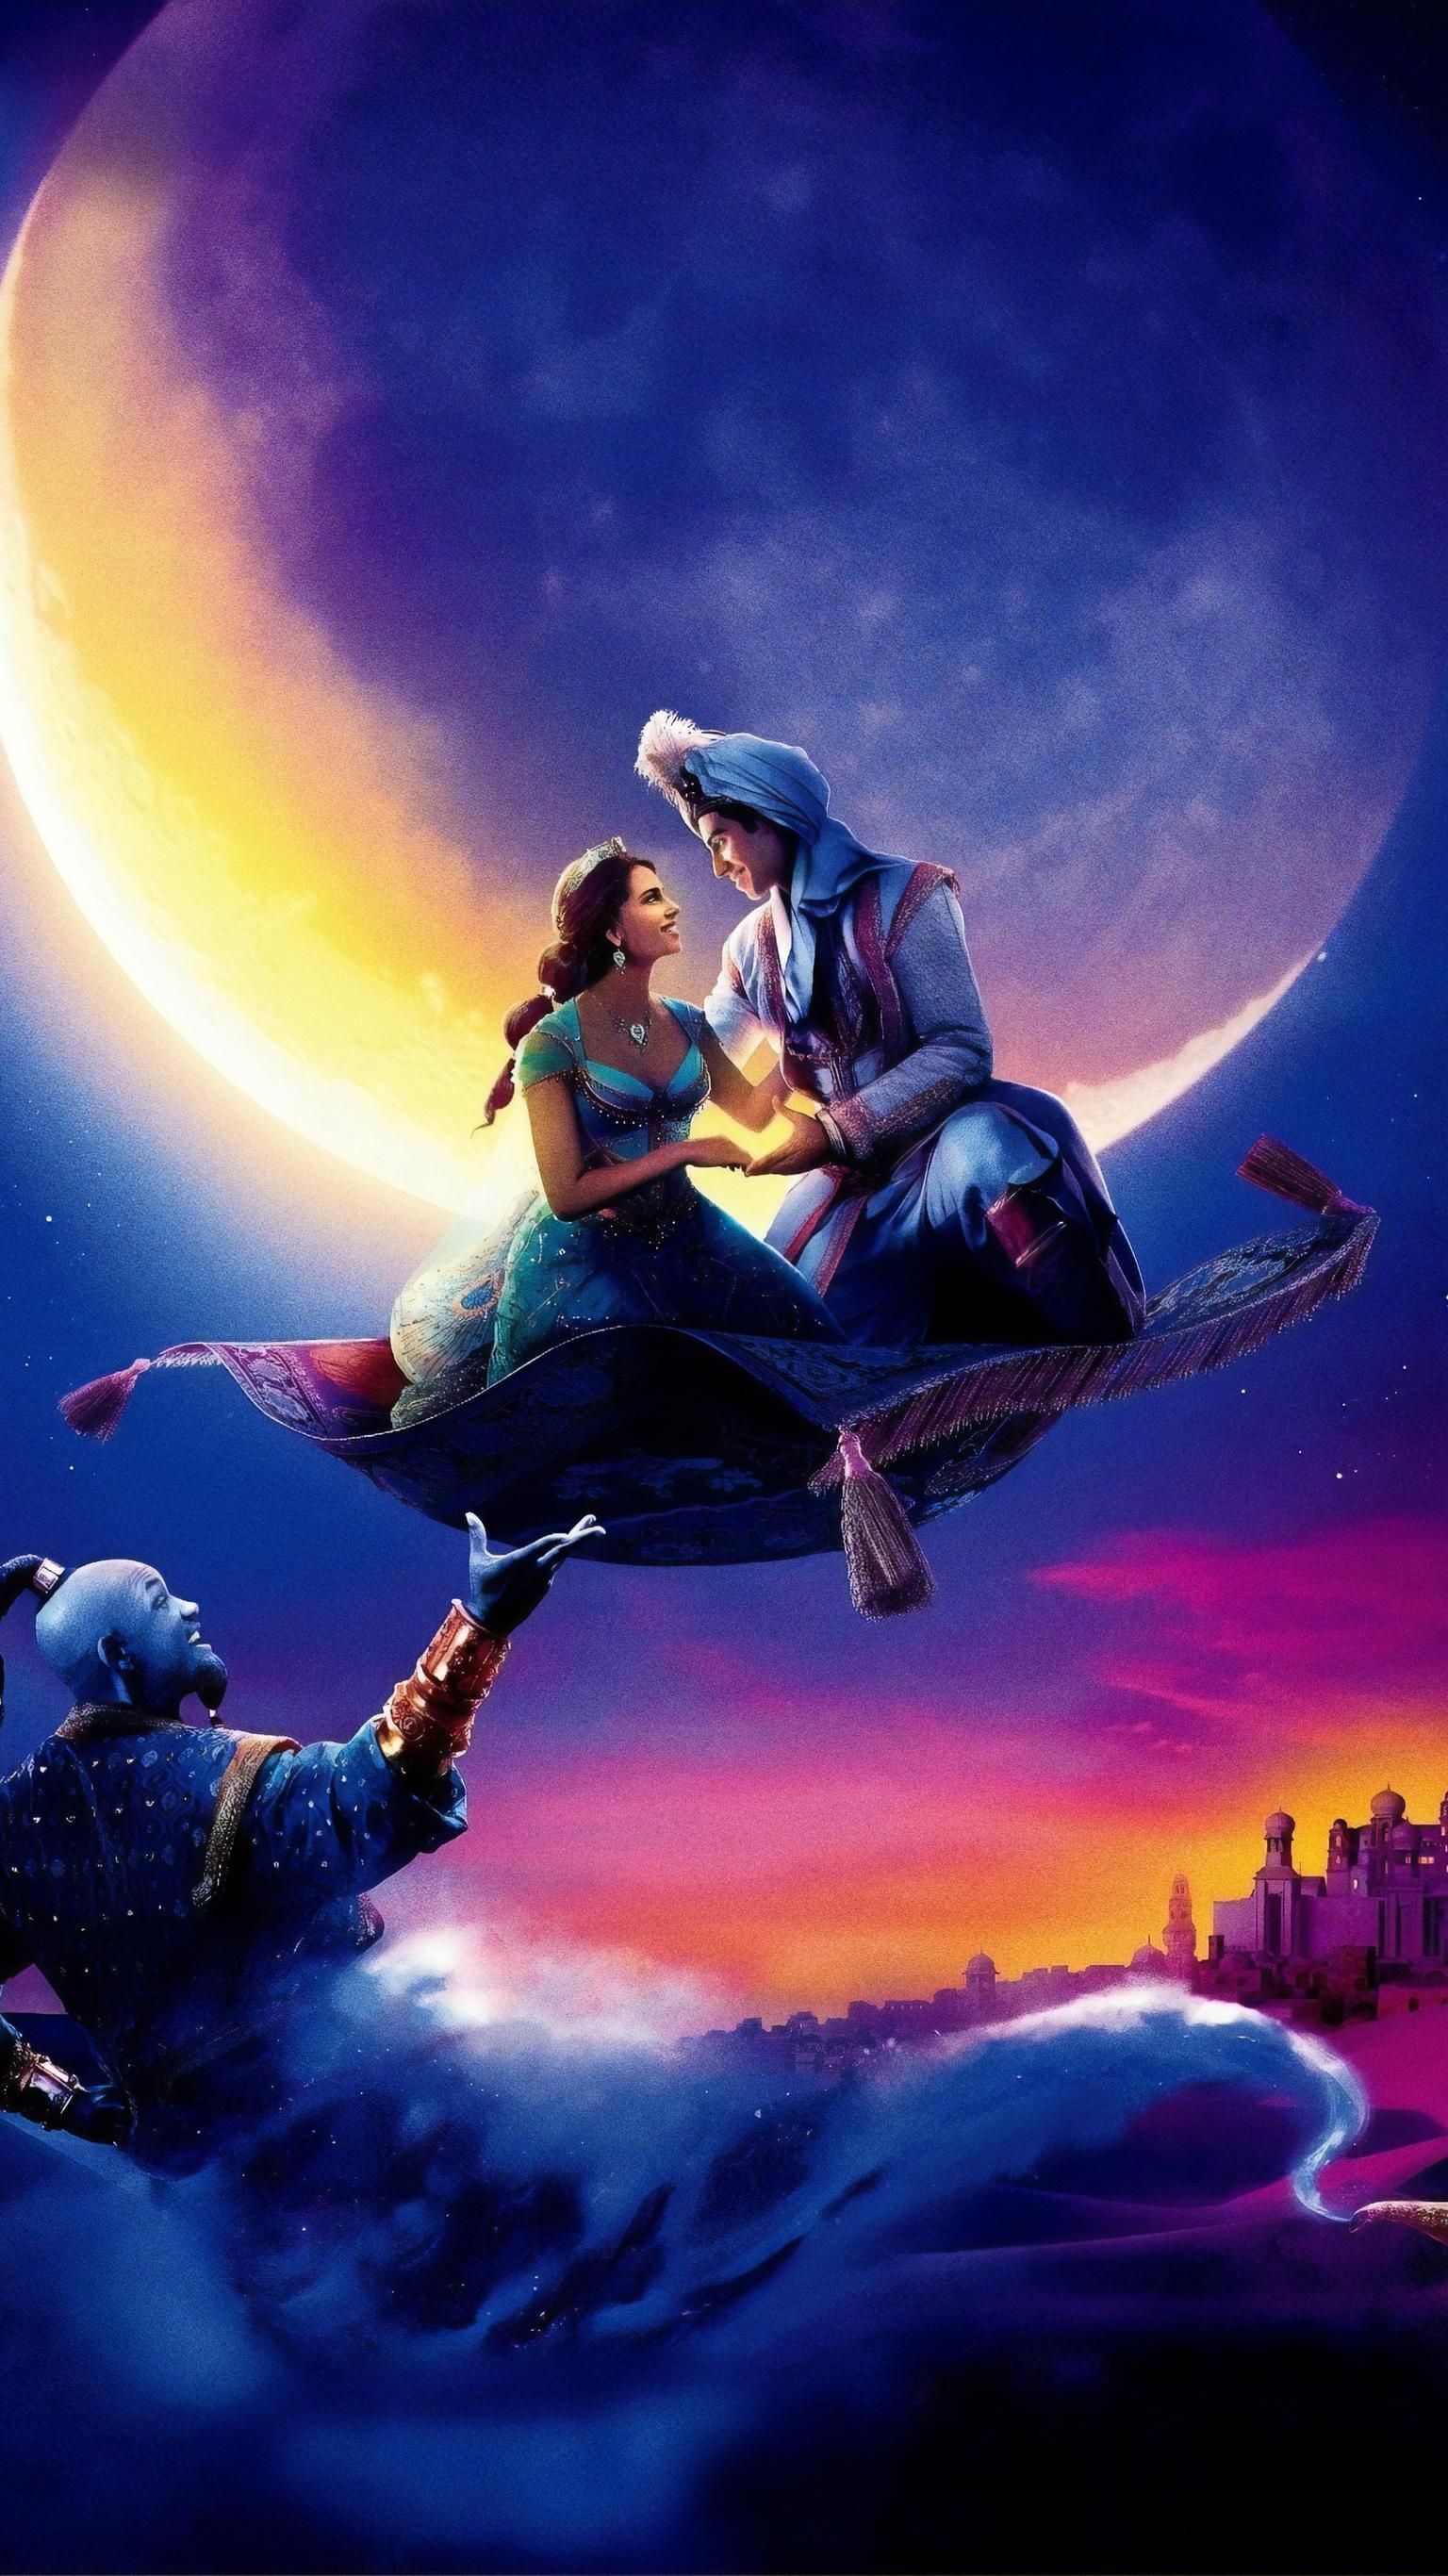 Aladdin (2019) Phone Wallpaper Aladdin wallpaper, Disney